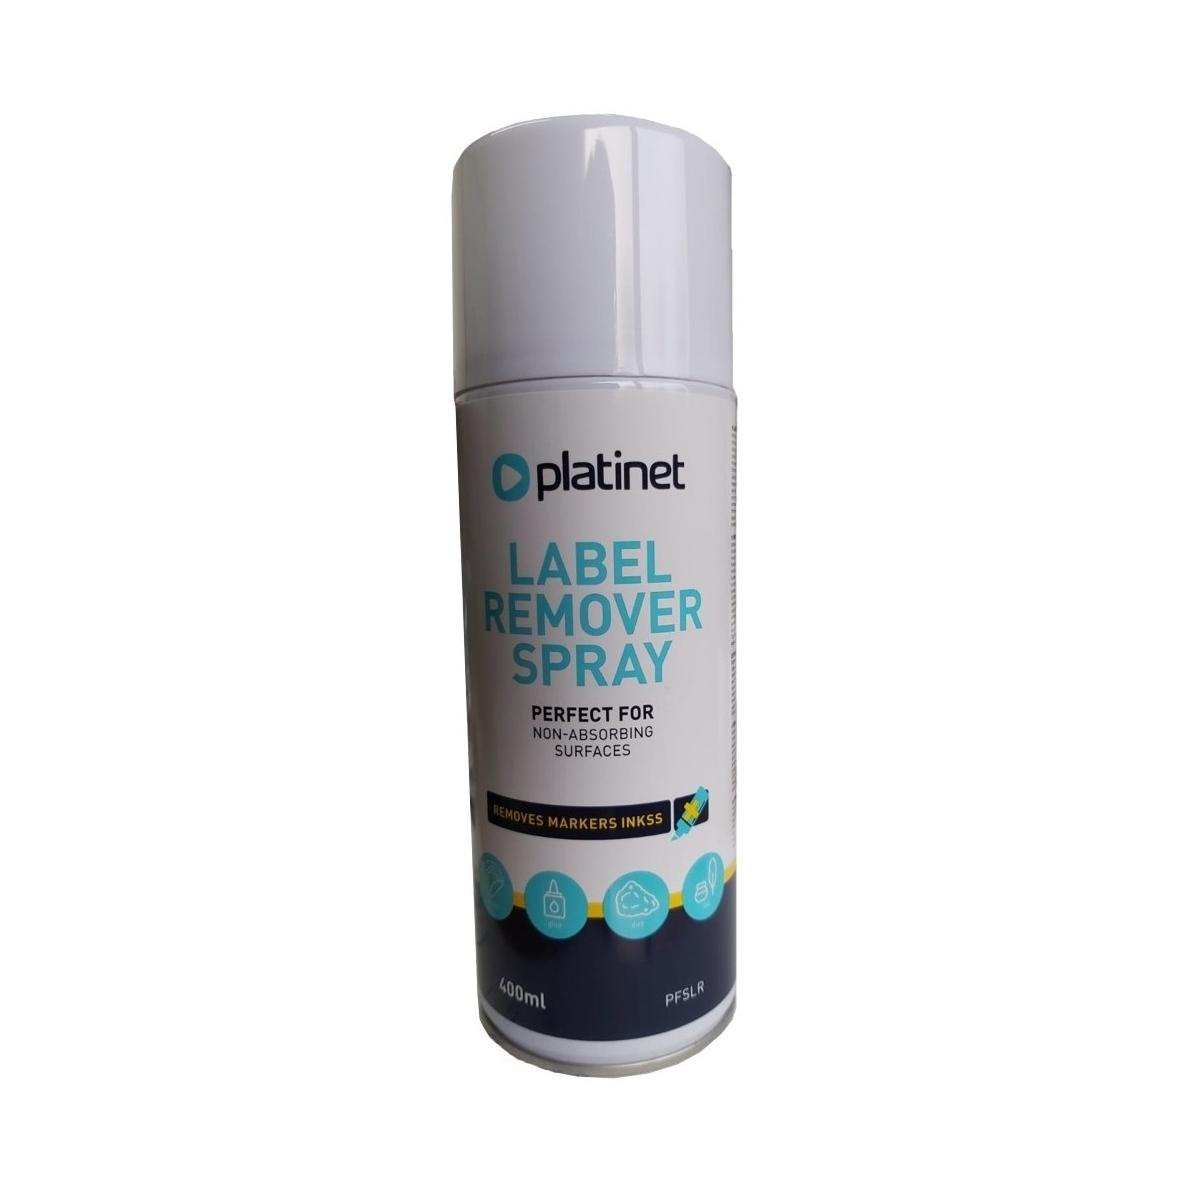 Platinet PFSLR Label Remover Spray 400мл